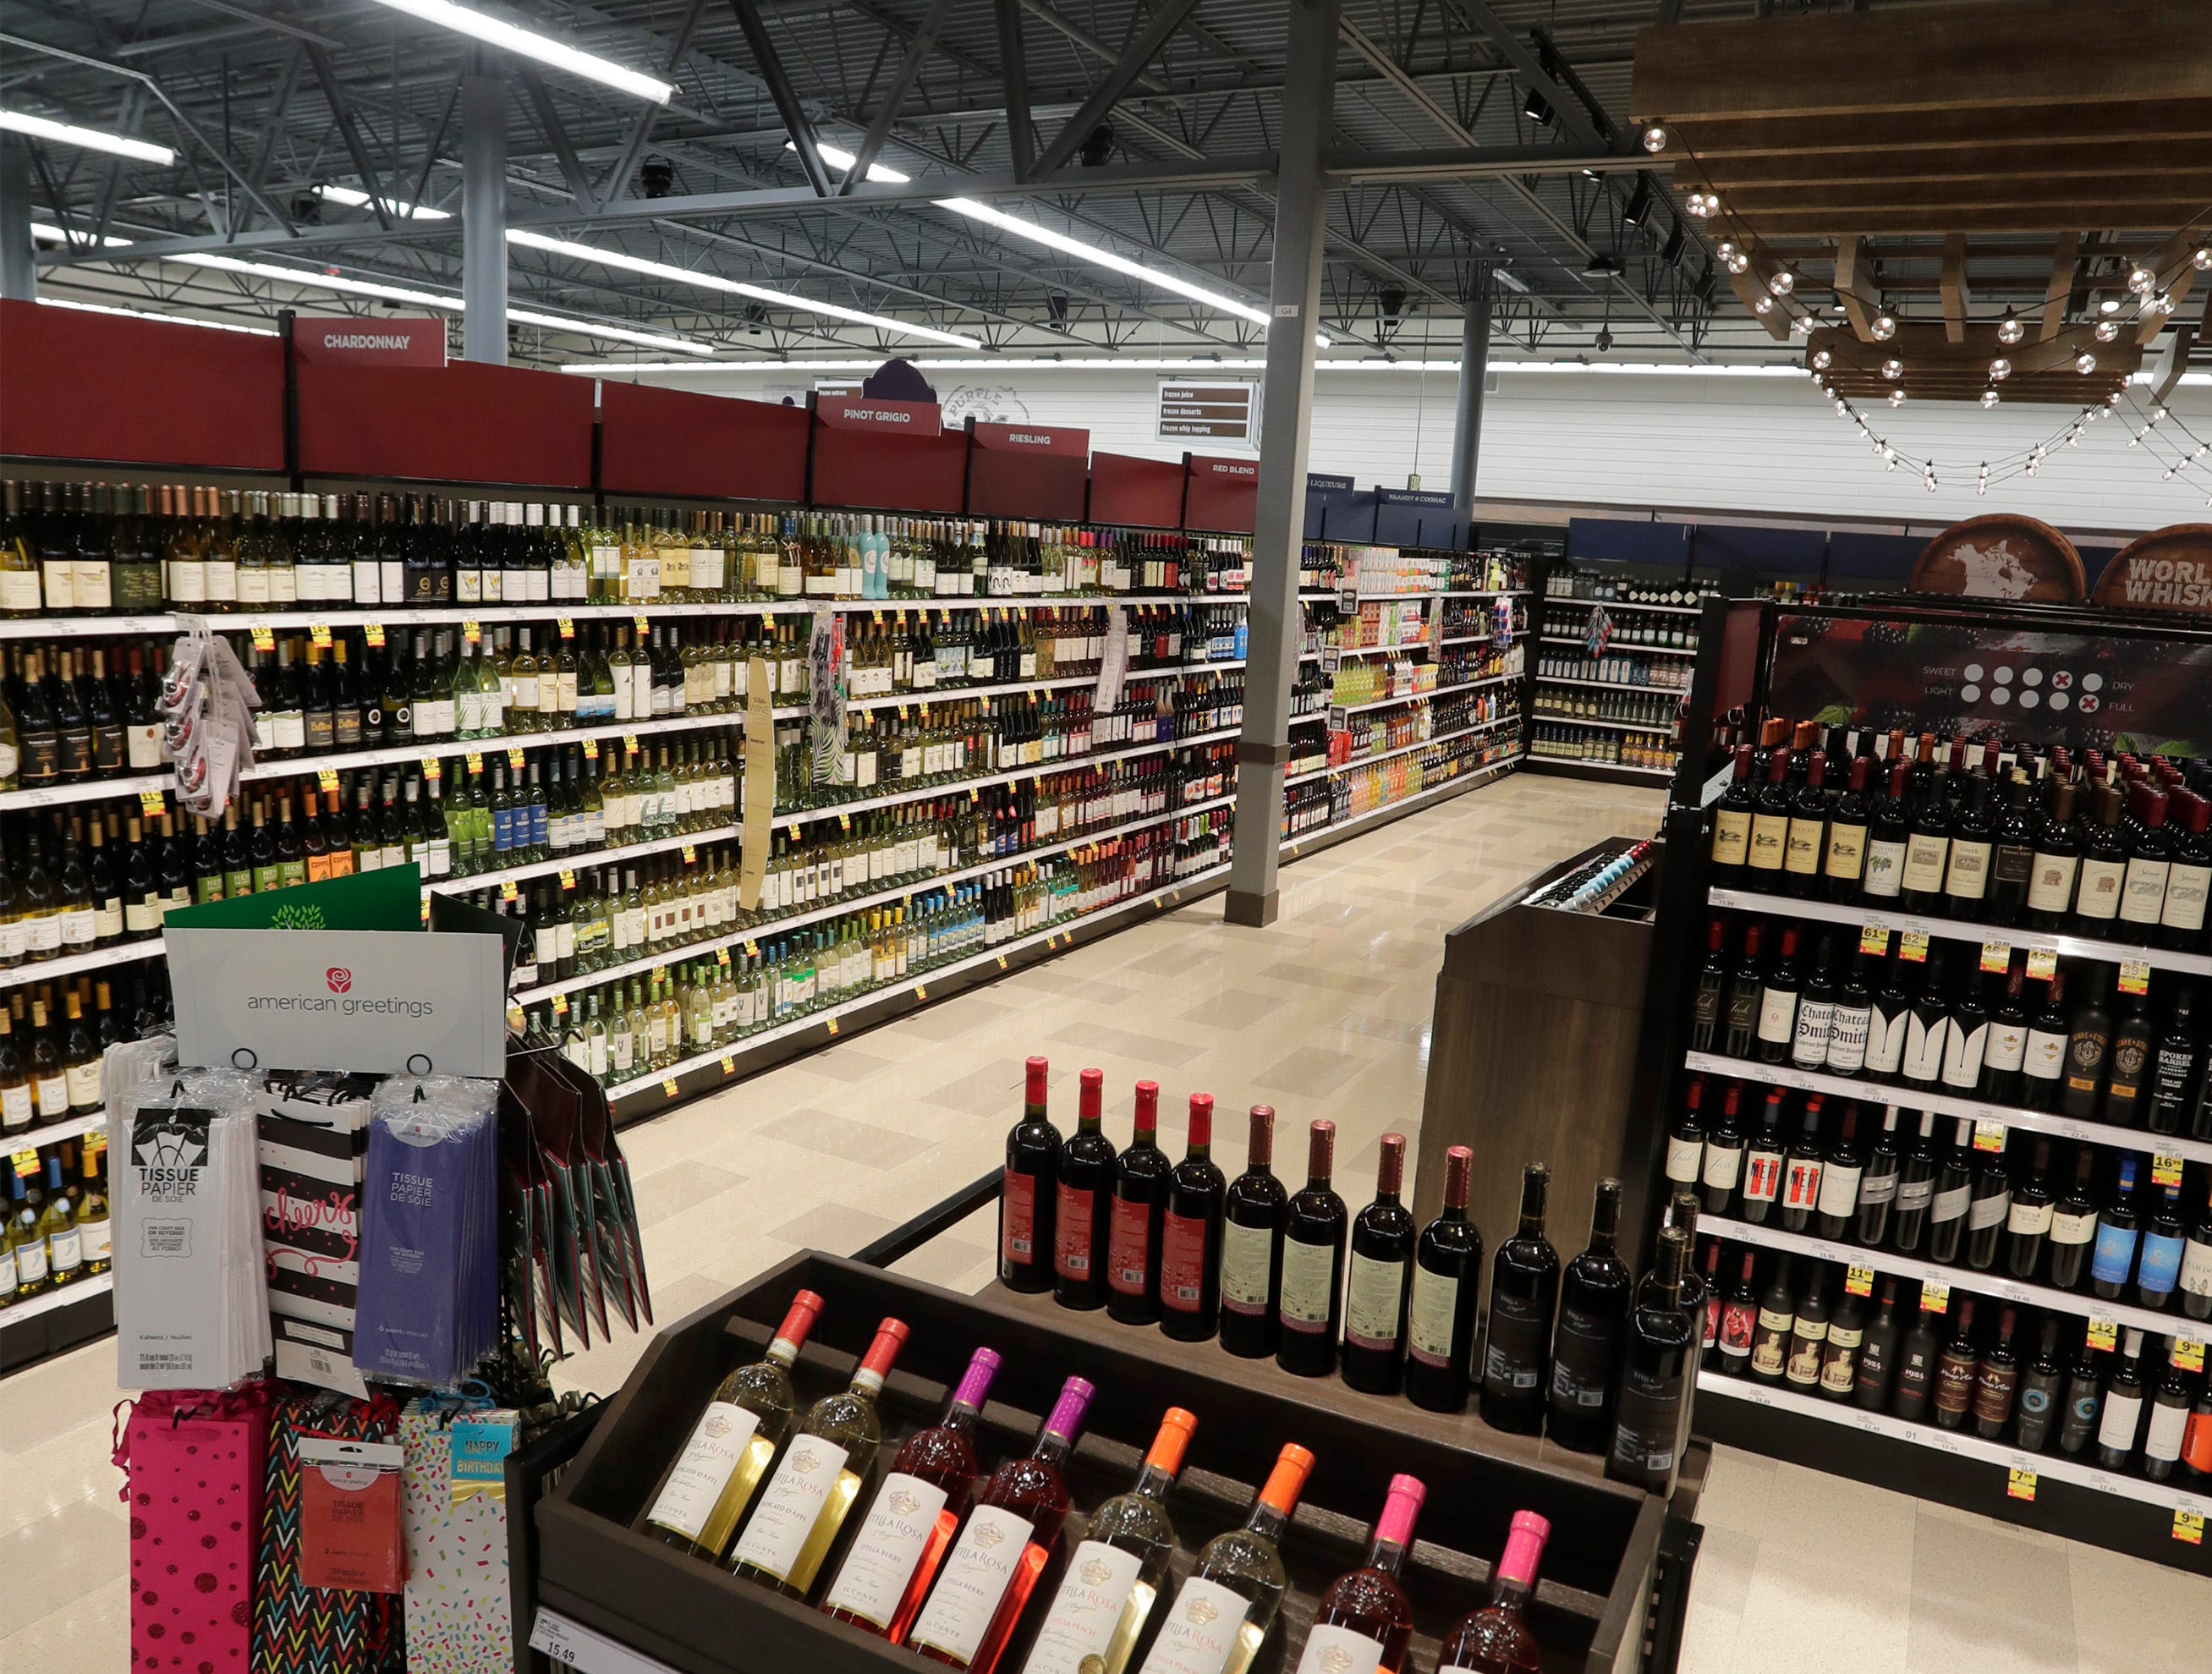 The liquor area at Meijer, Thursday April 25, 2019, in Sheboygan, Wis. The 155,000-square-foot supercenter has 300 employees on opening day.